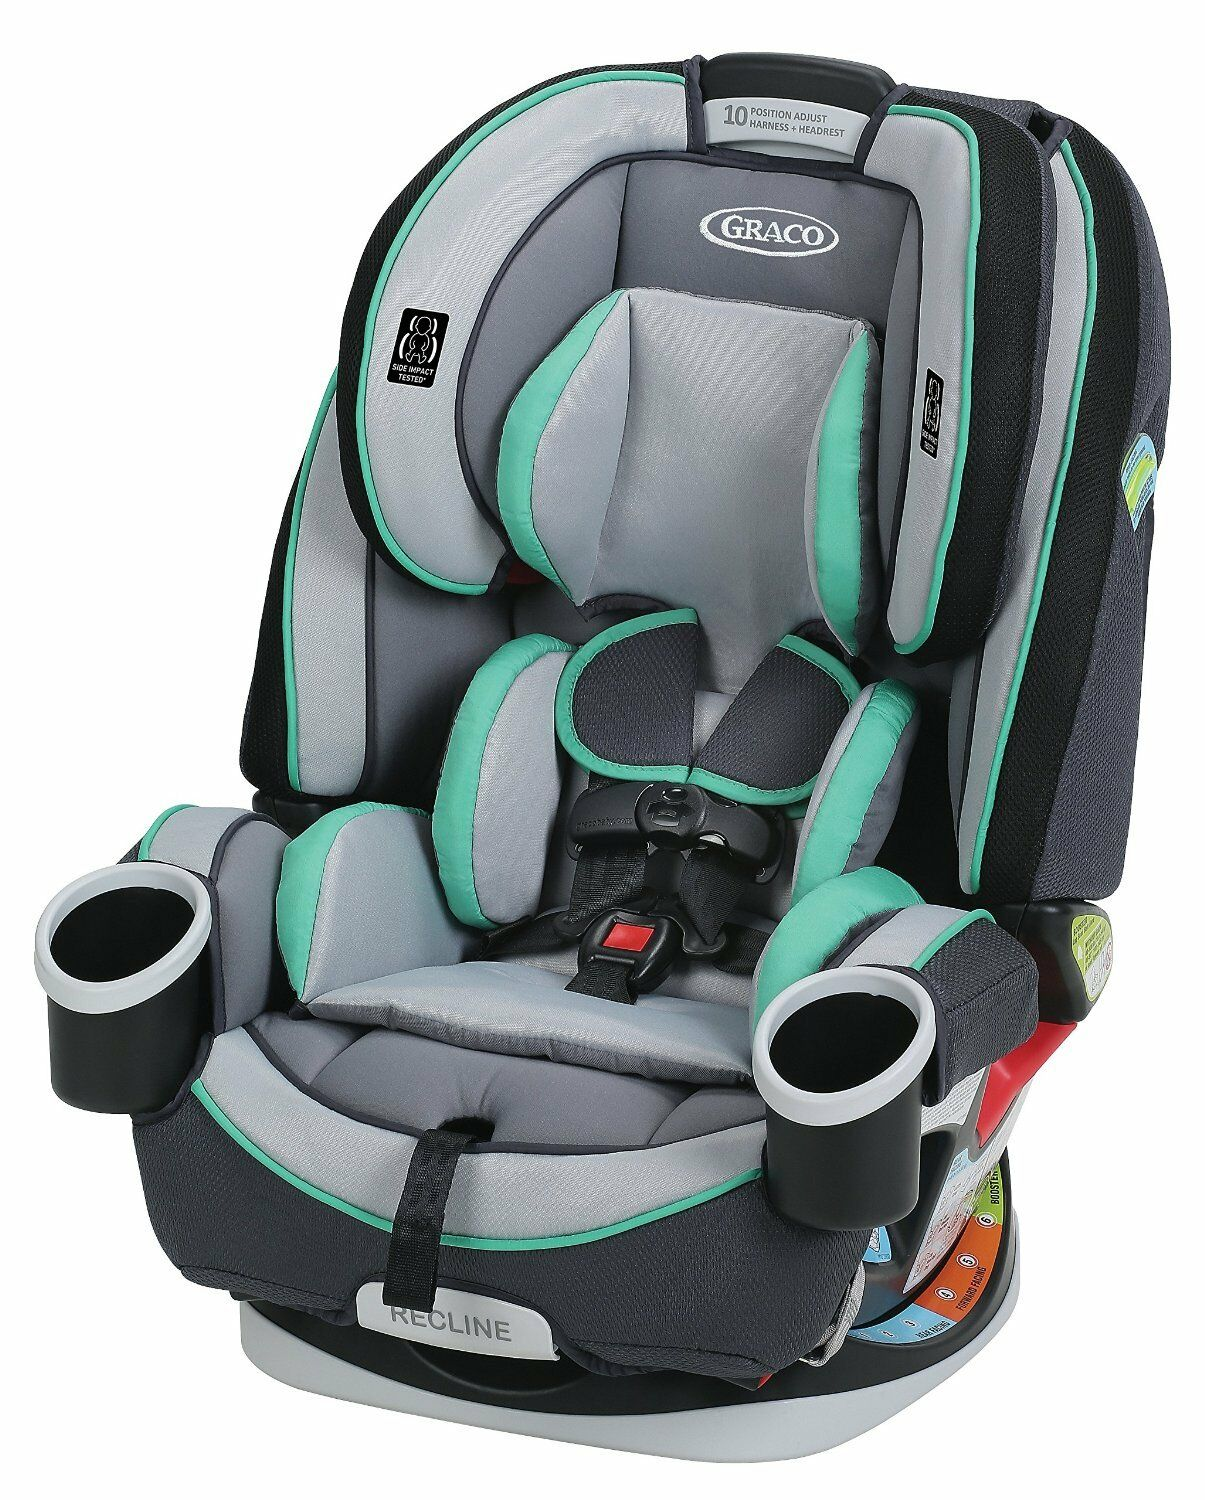 Graco Ever All In One Convertible Car Seat Australia